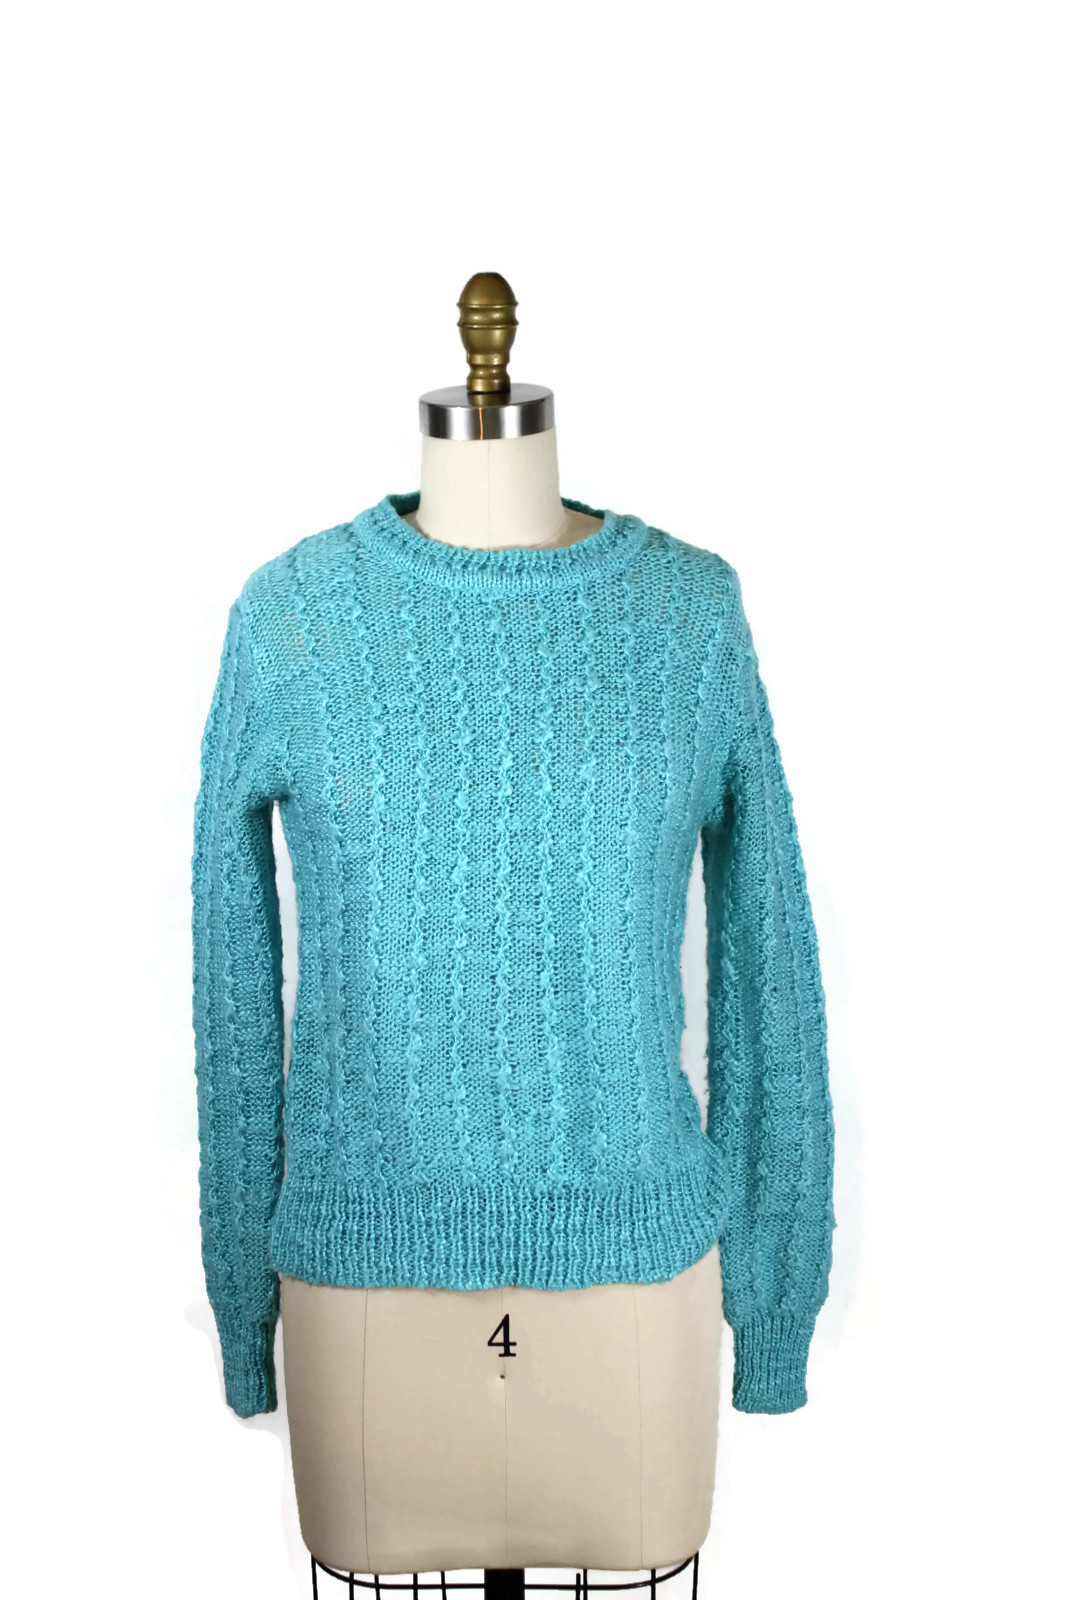 https://www.etsy.com/listing/208961726/1970s-teal-bloucle-sweater-70s-cable